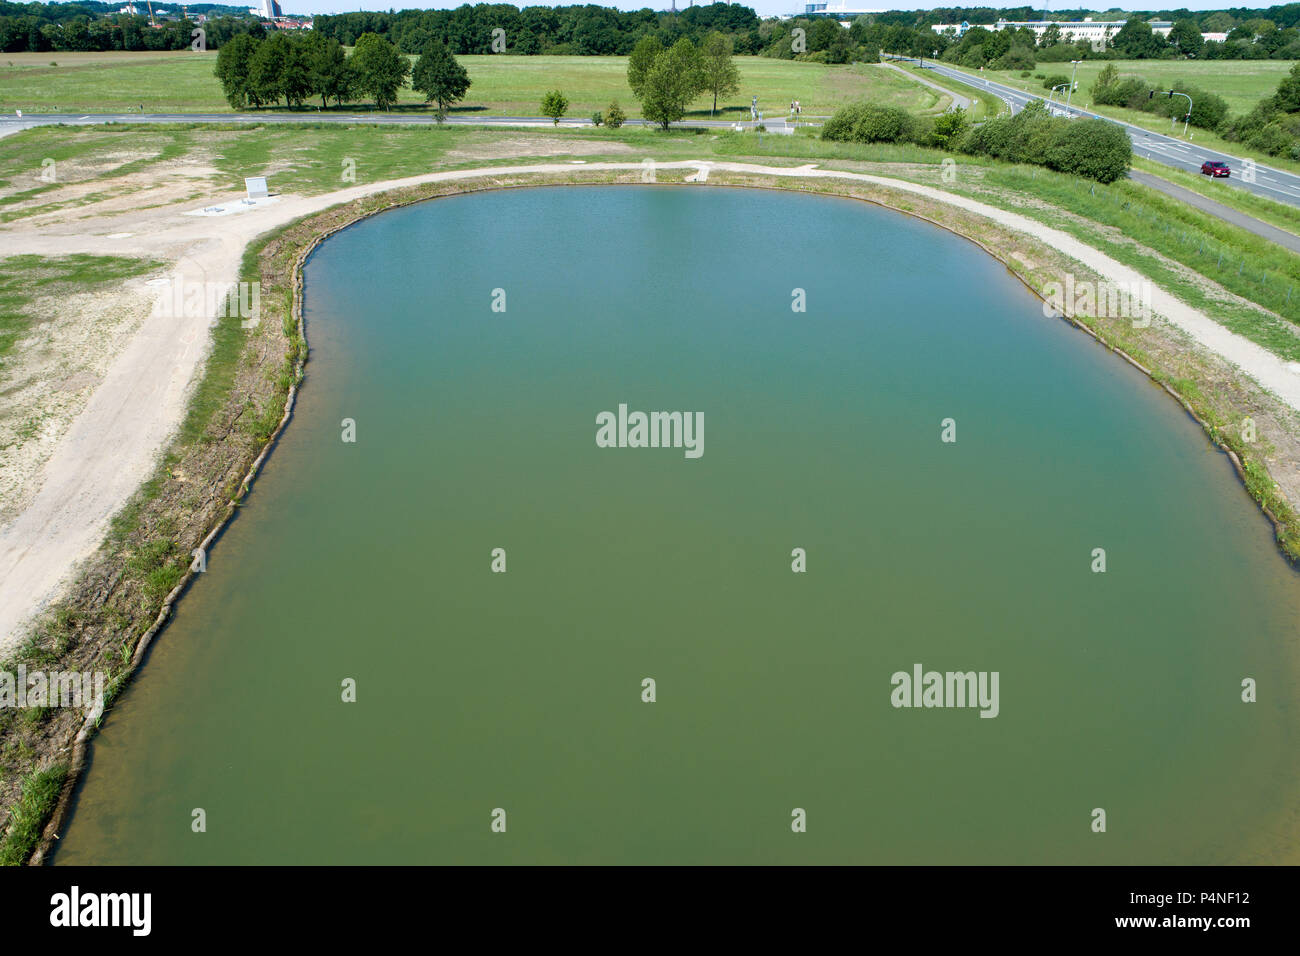 Rainwater retention basin with turquoise coloured water, taken diagonally from the air with a drone, Germany - Stock Image